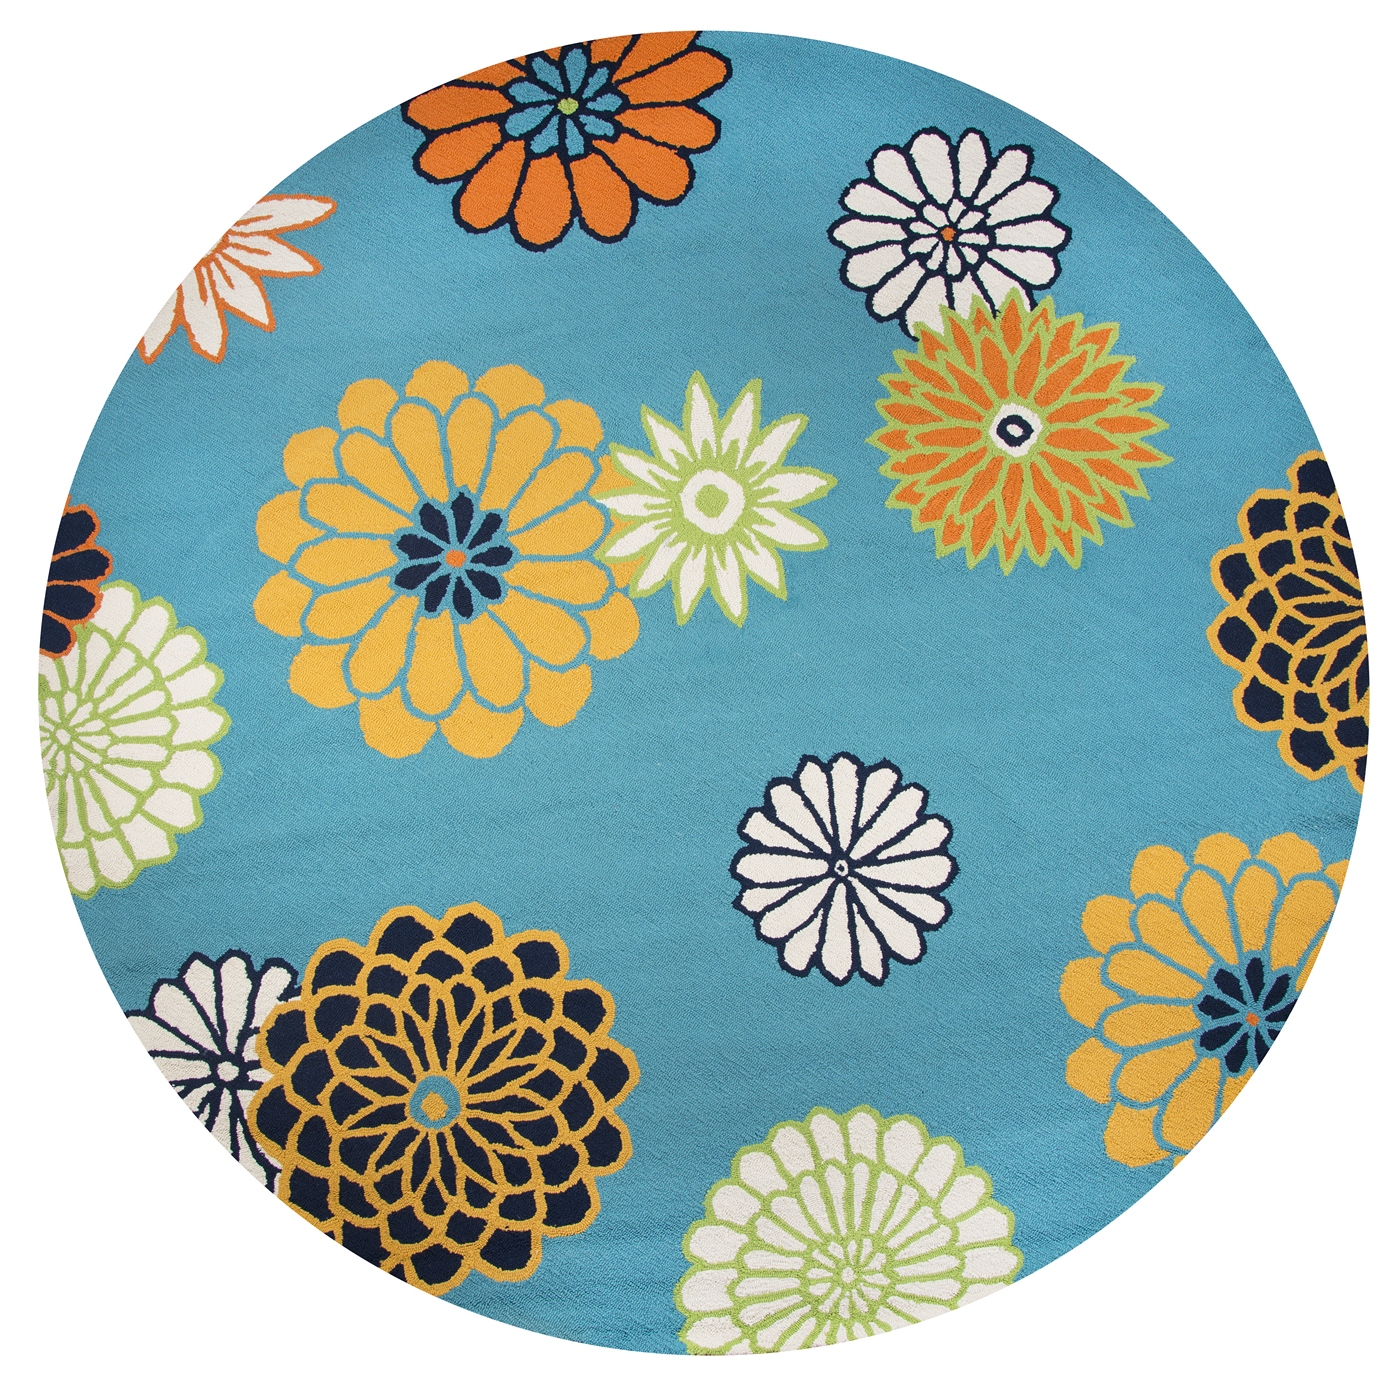 Azzura Hill Modern Floral Round Rug In Teal Yellow White